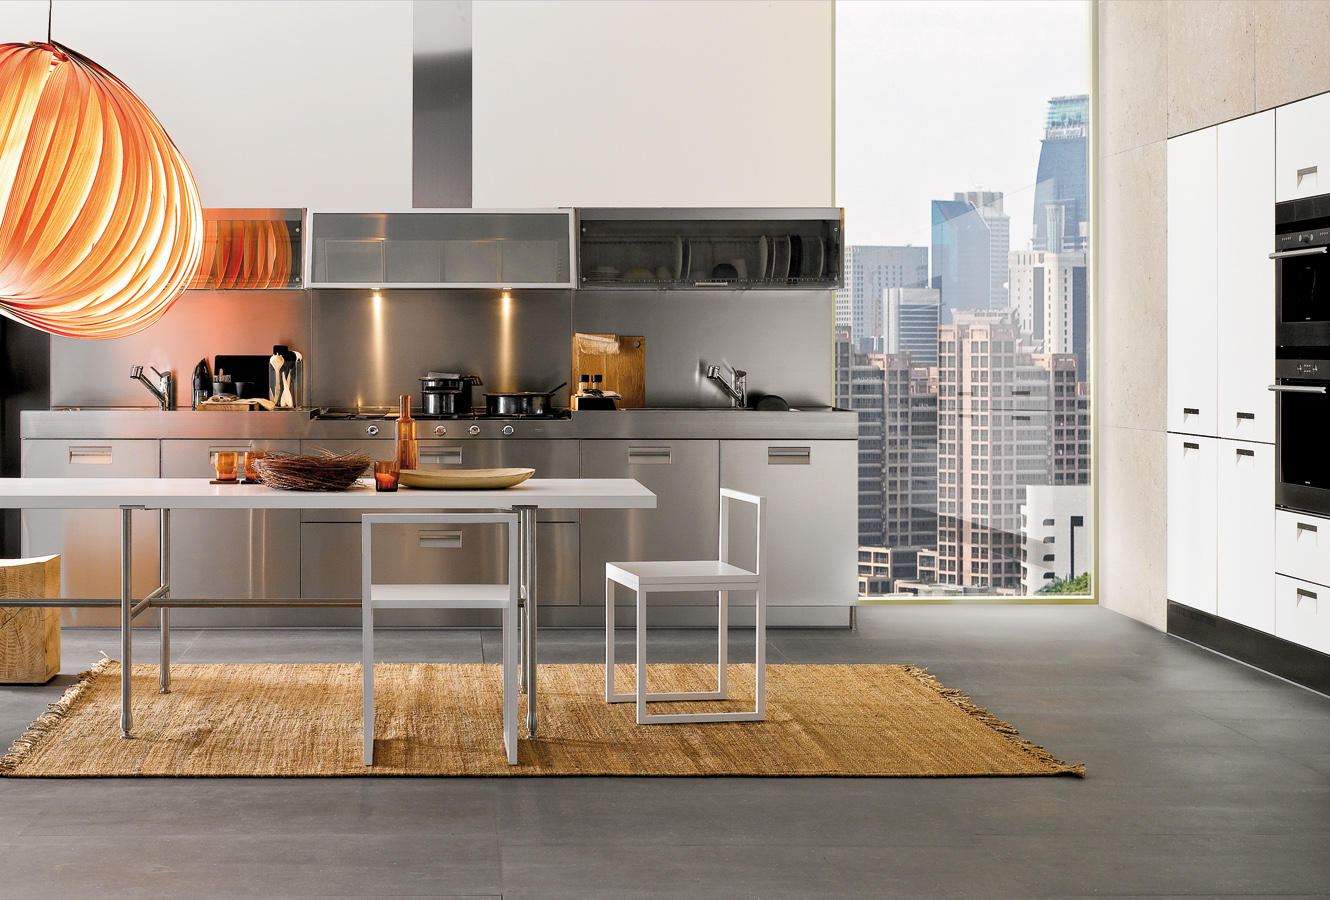 Stainless Steel Kitchen - Modern italian kitchen design from arclinea